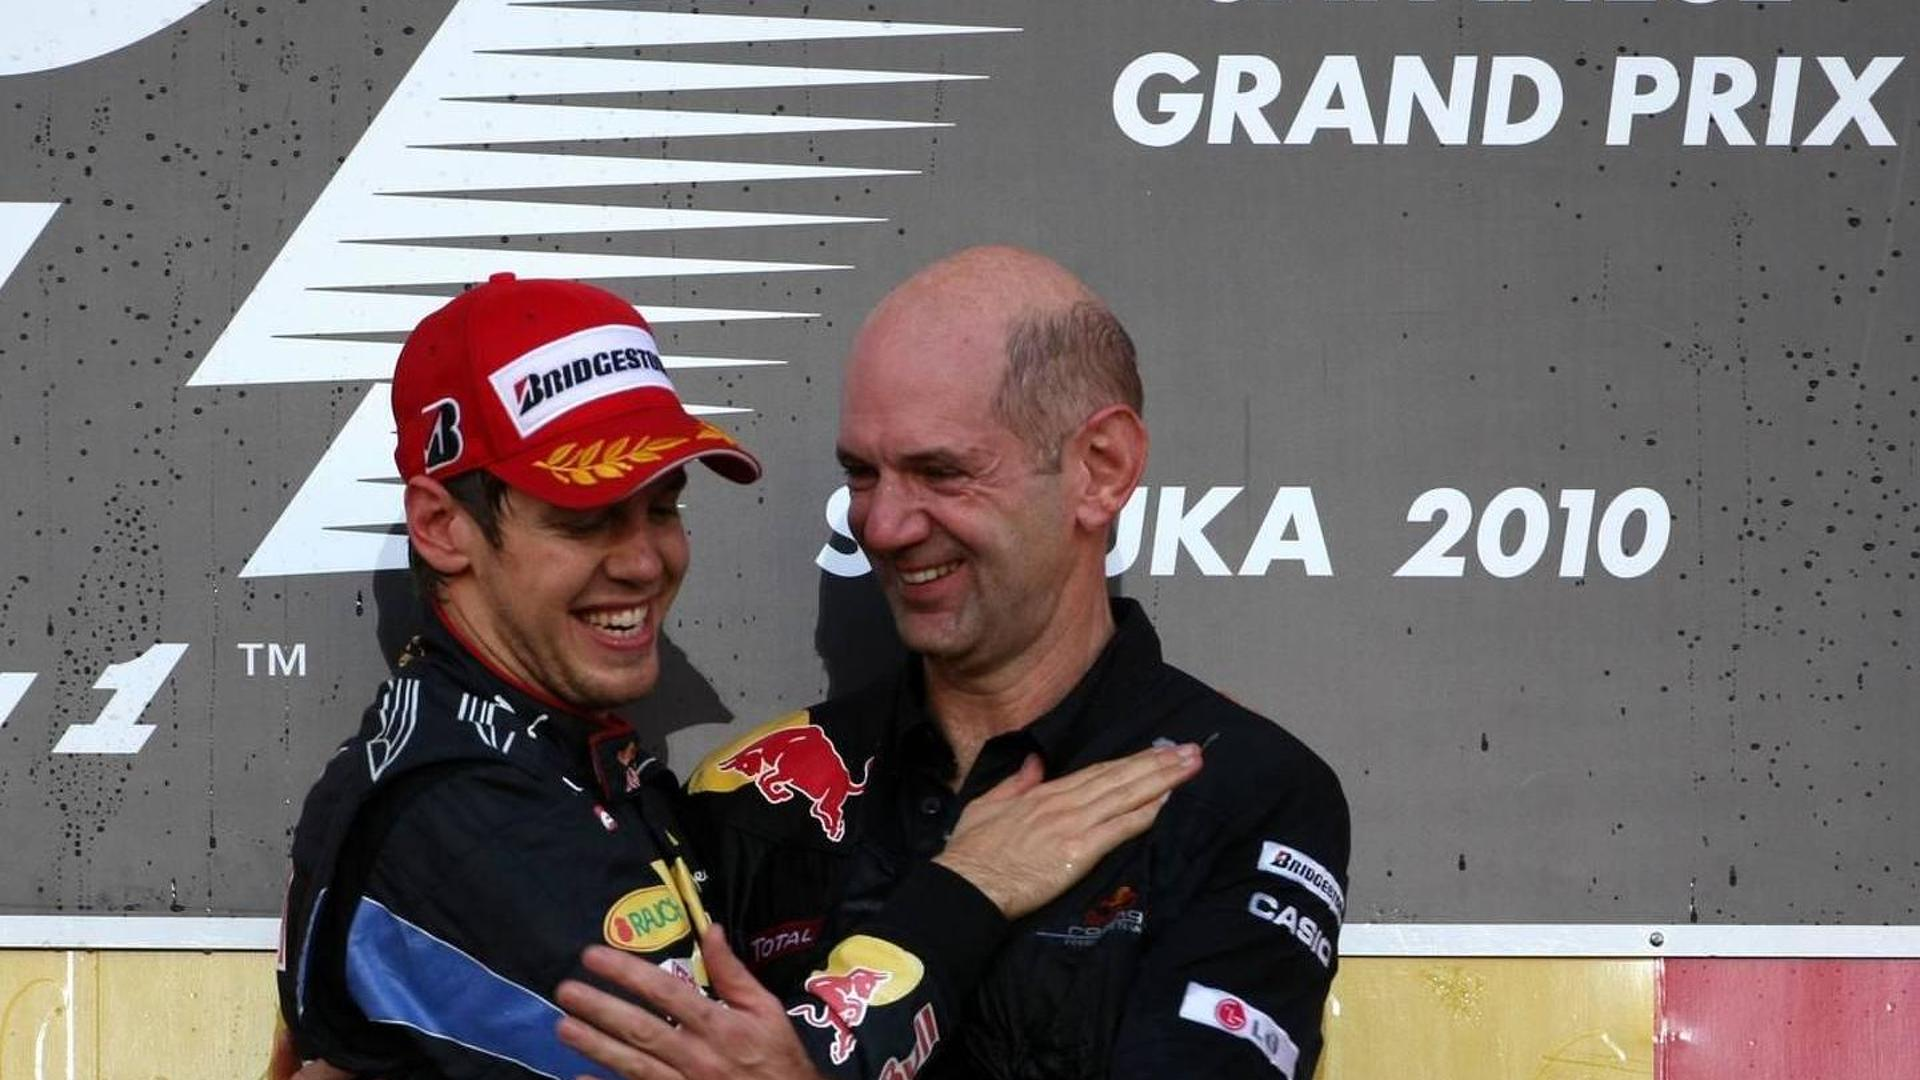 No plans to leave F1 'for a while' - Newey